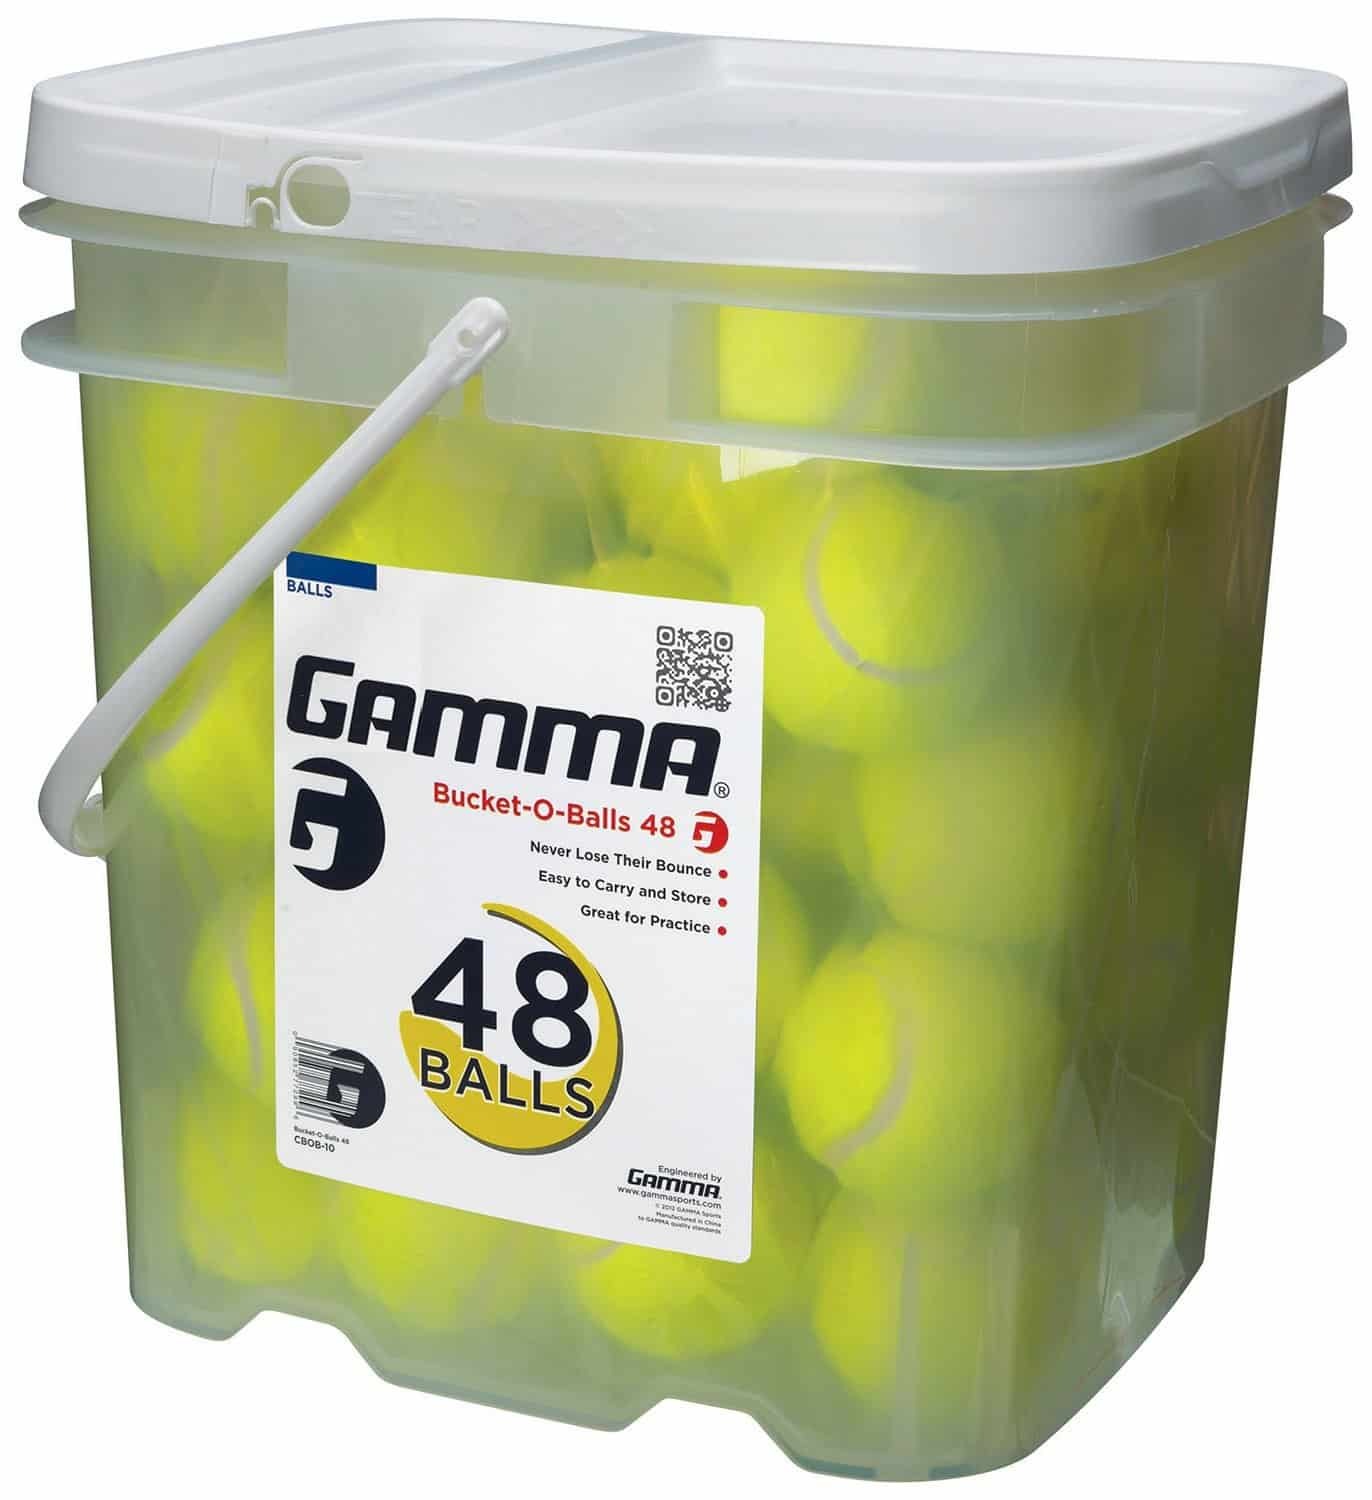 Gamma Pressureless Tennis Ball Bucket